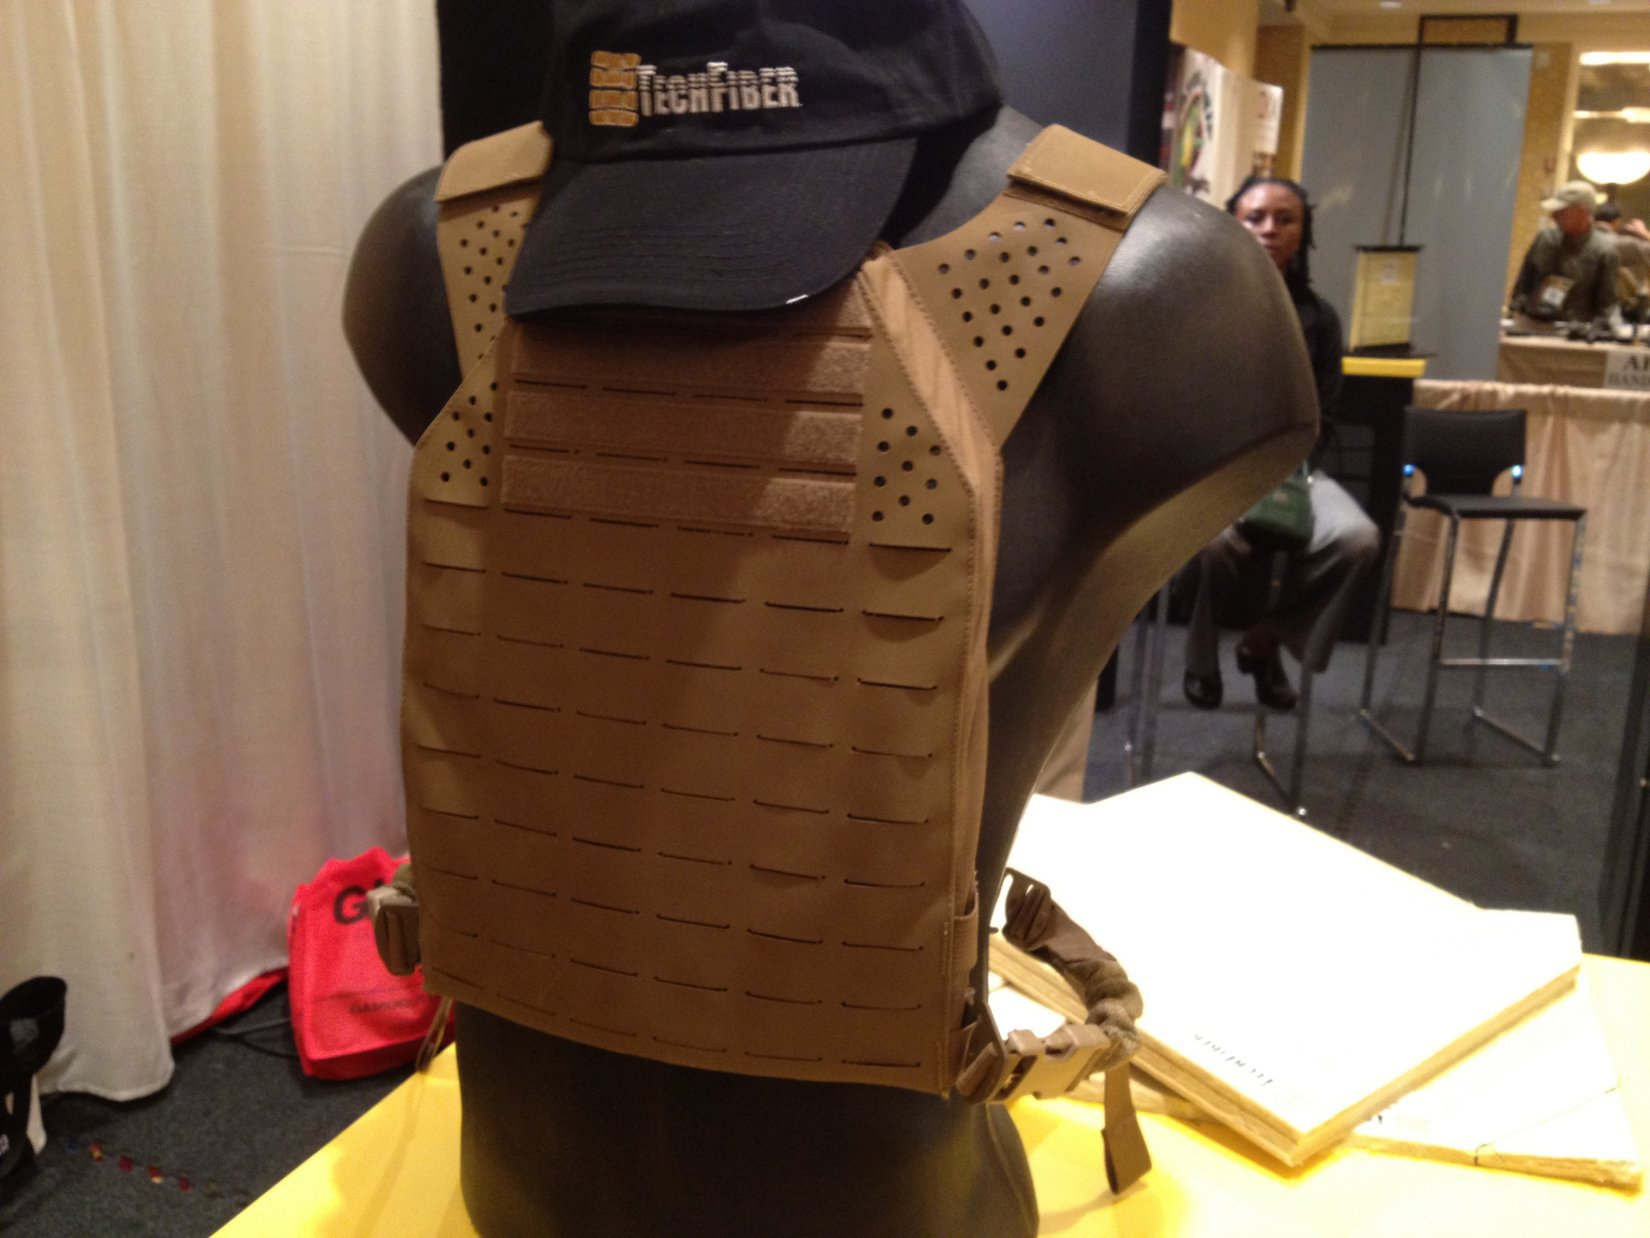 ArmorWorks Modular Plate Carrier MPC Tactical Armor Plate Carrier Alex Gallo SHOT Show 2012 DefenseReview.com DR 5 ArmorWorks Modular Plate Carrier (MPC): Scalable High Tech Minimalist/Low Profile Tactical Armor Plate Carrier (Military Body Armor) with SOURCE Tactical Hydration/Water Bladder System and Super Strong Polymer Non MOLLE MOLLE/PALS Webbing System and Shoulder Straps at SHOT Show 2012 (Video!)